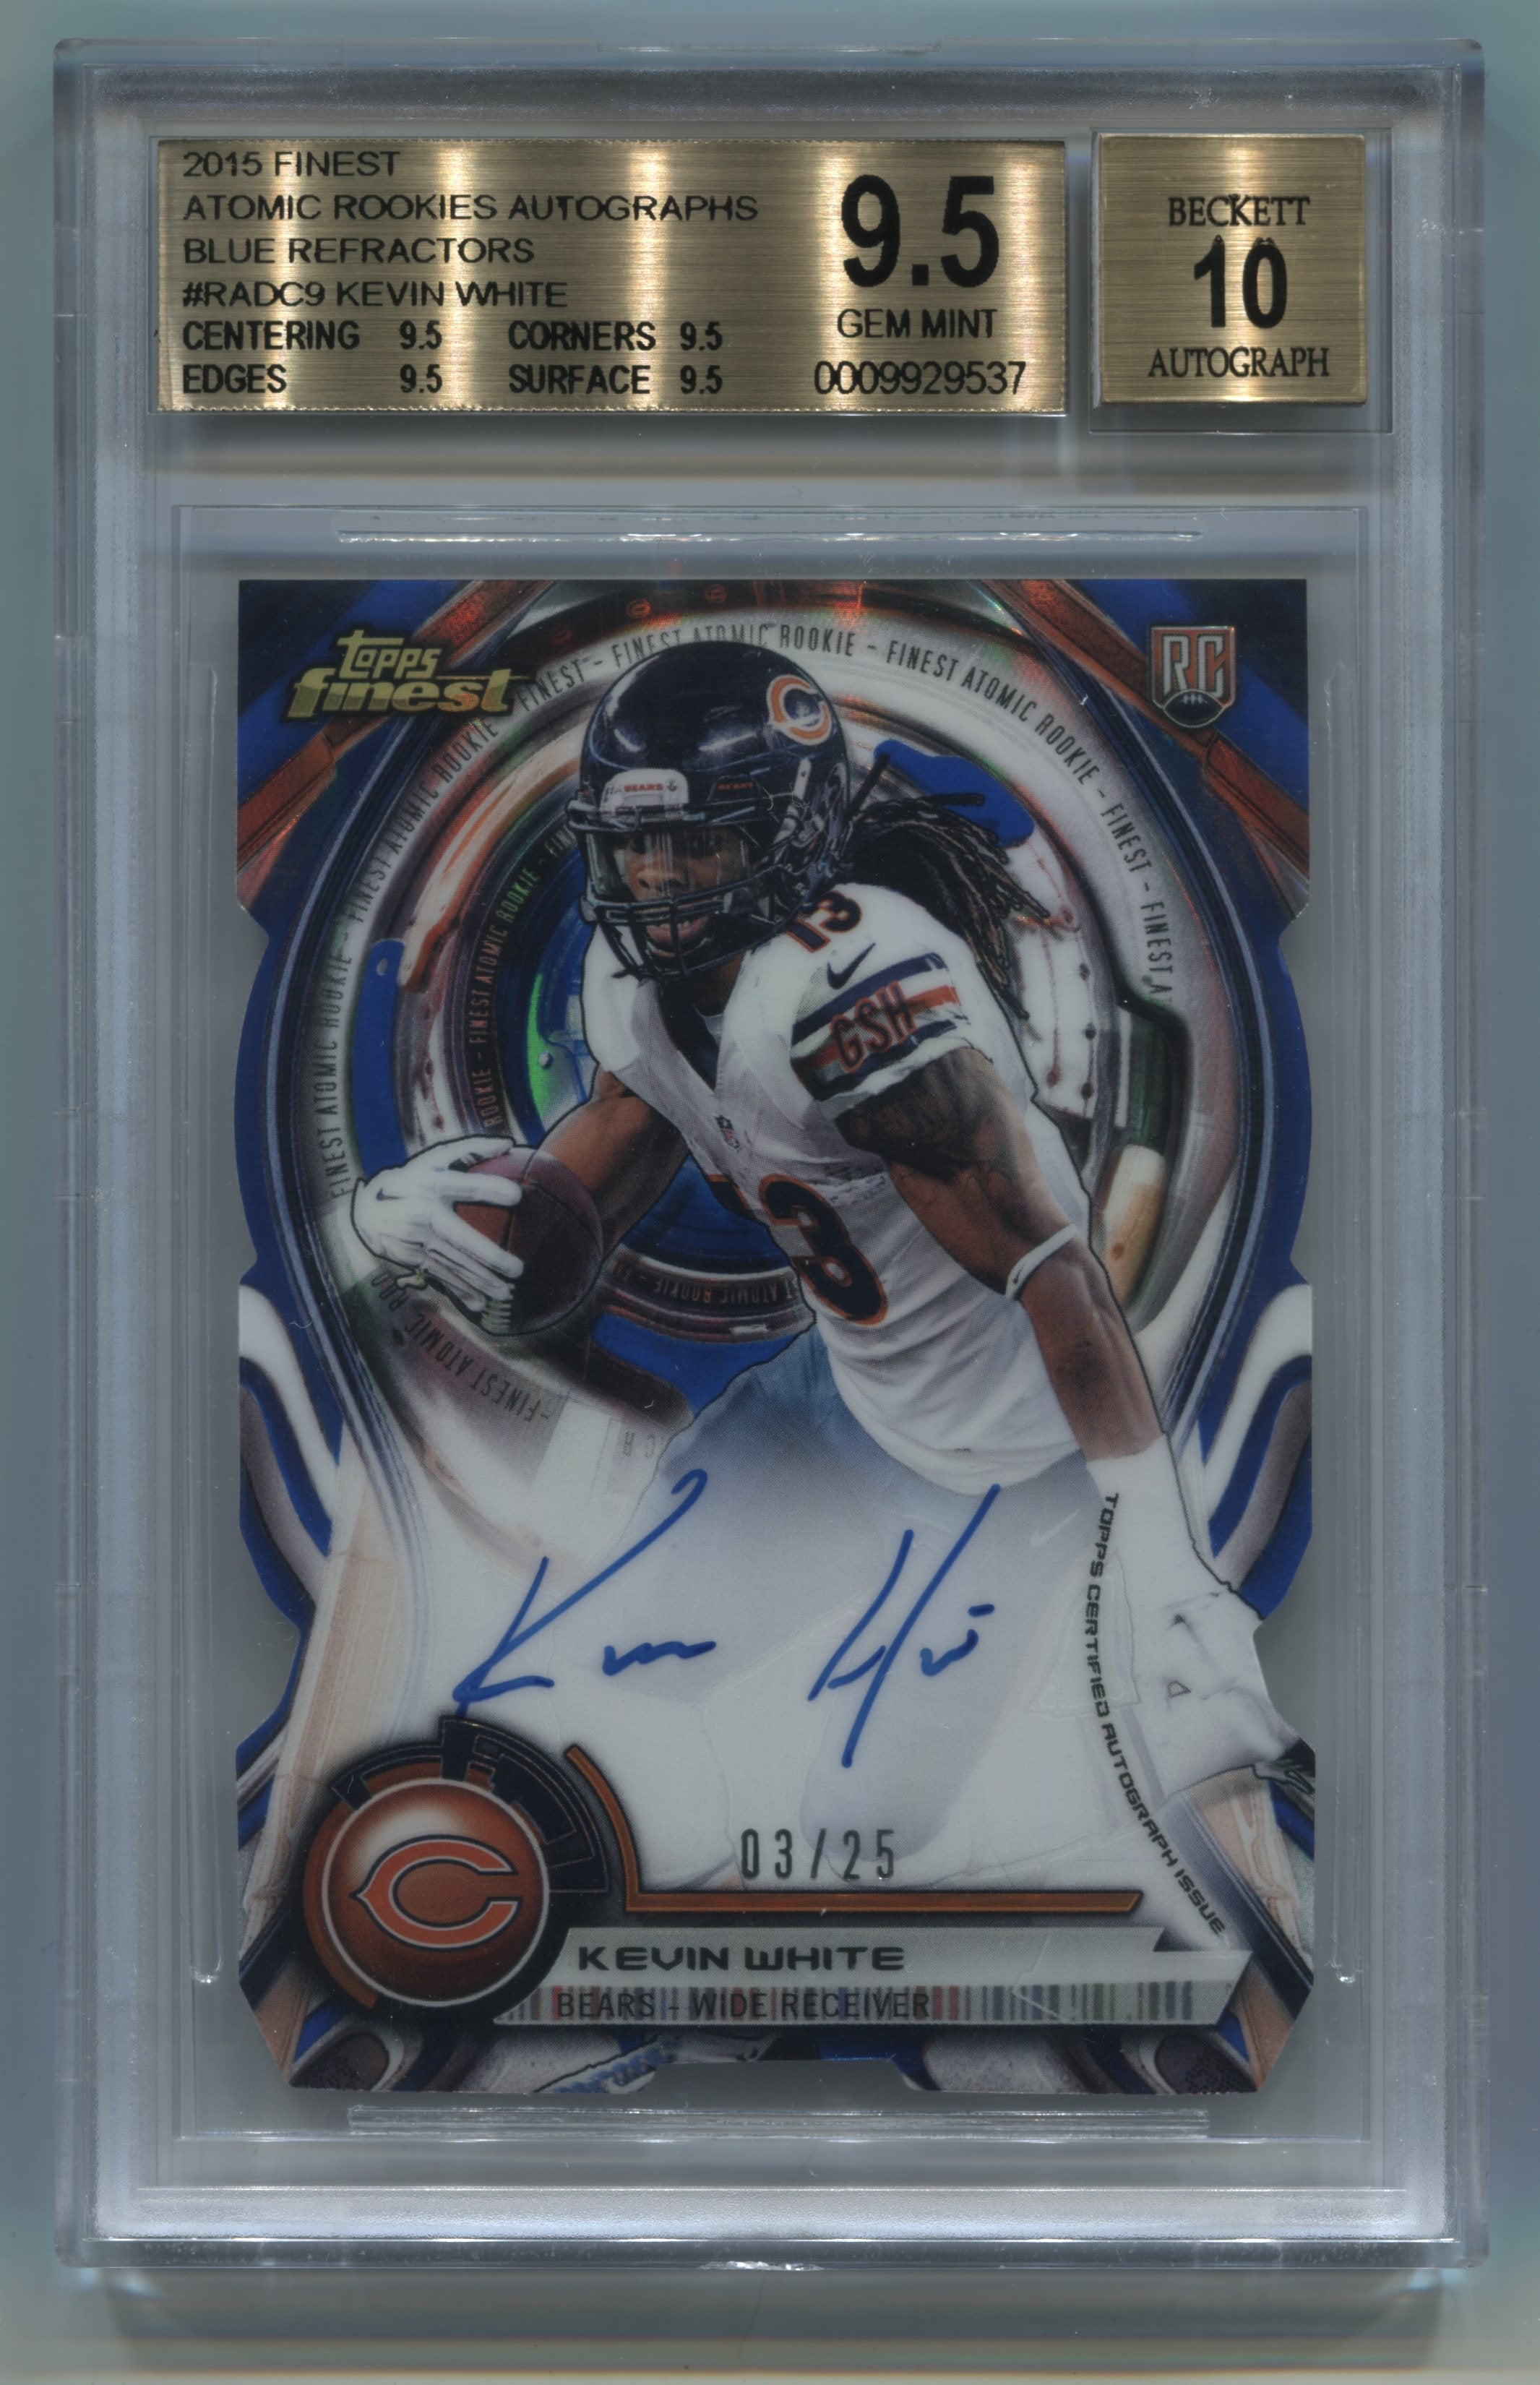 2015 Finest Atomic Refractor Rookies Autographs Blue Refractors #RADC9 Kevin White #03/25 BGS 9.5/10 | Eastridge Sports Cards